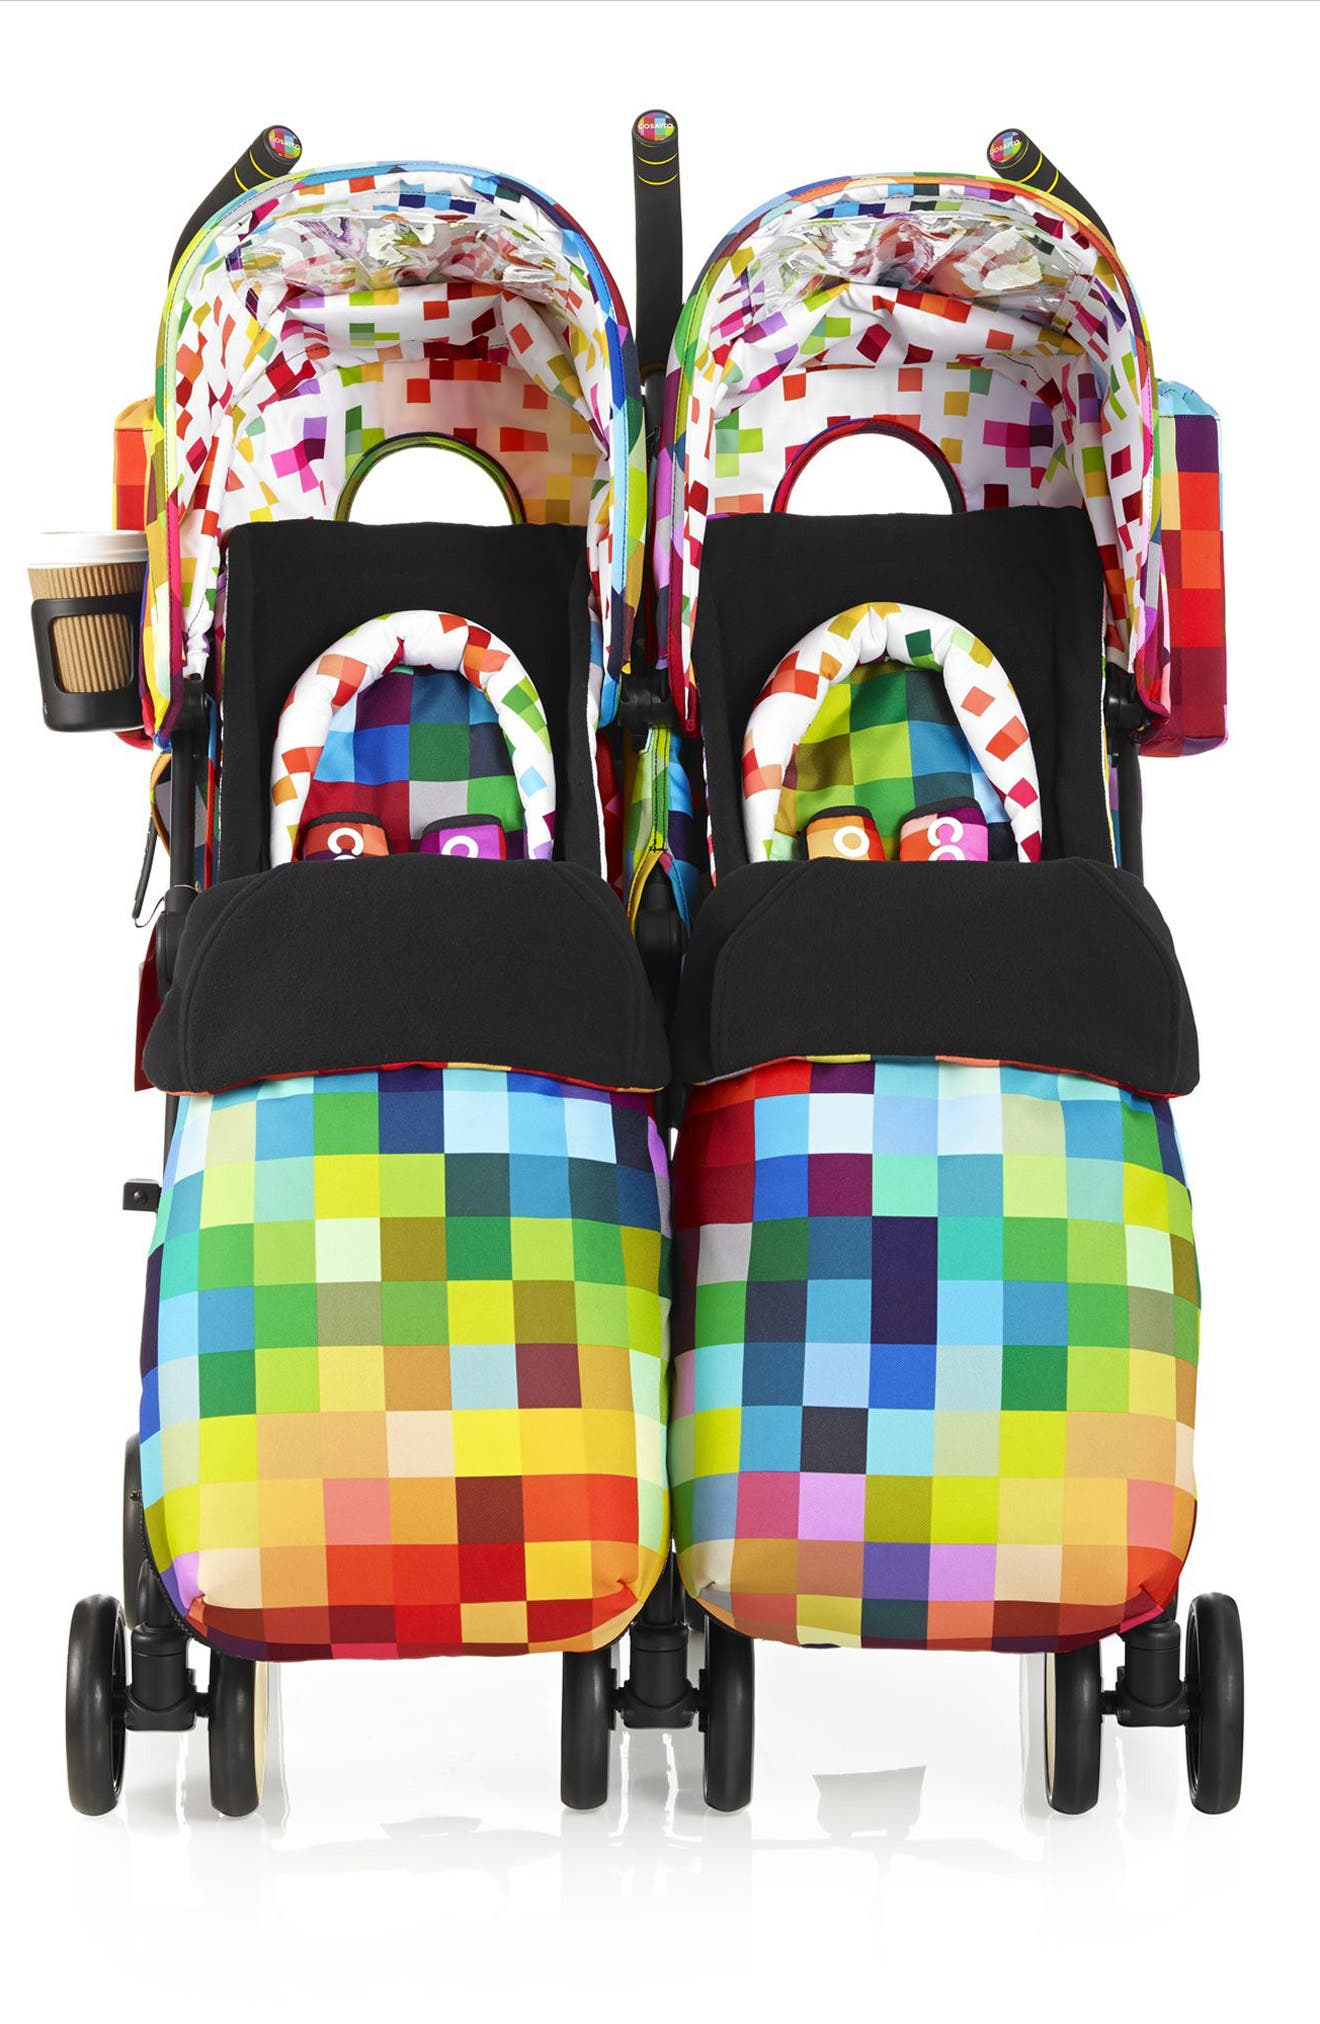 Alternate Image 1 Selected - Cosatto Supa Dupa Pixelate Double Stroller